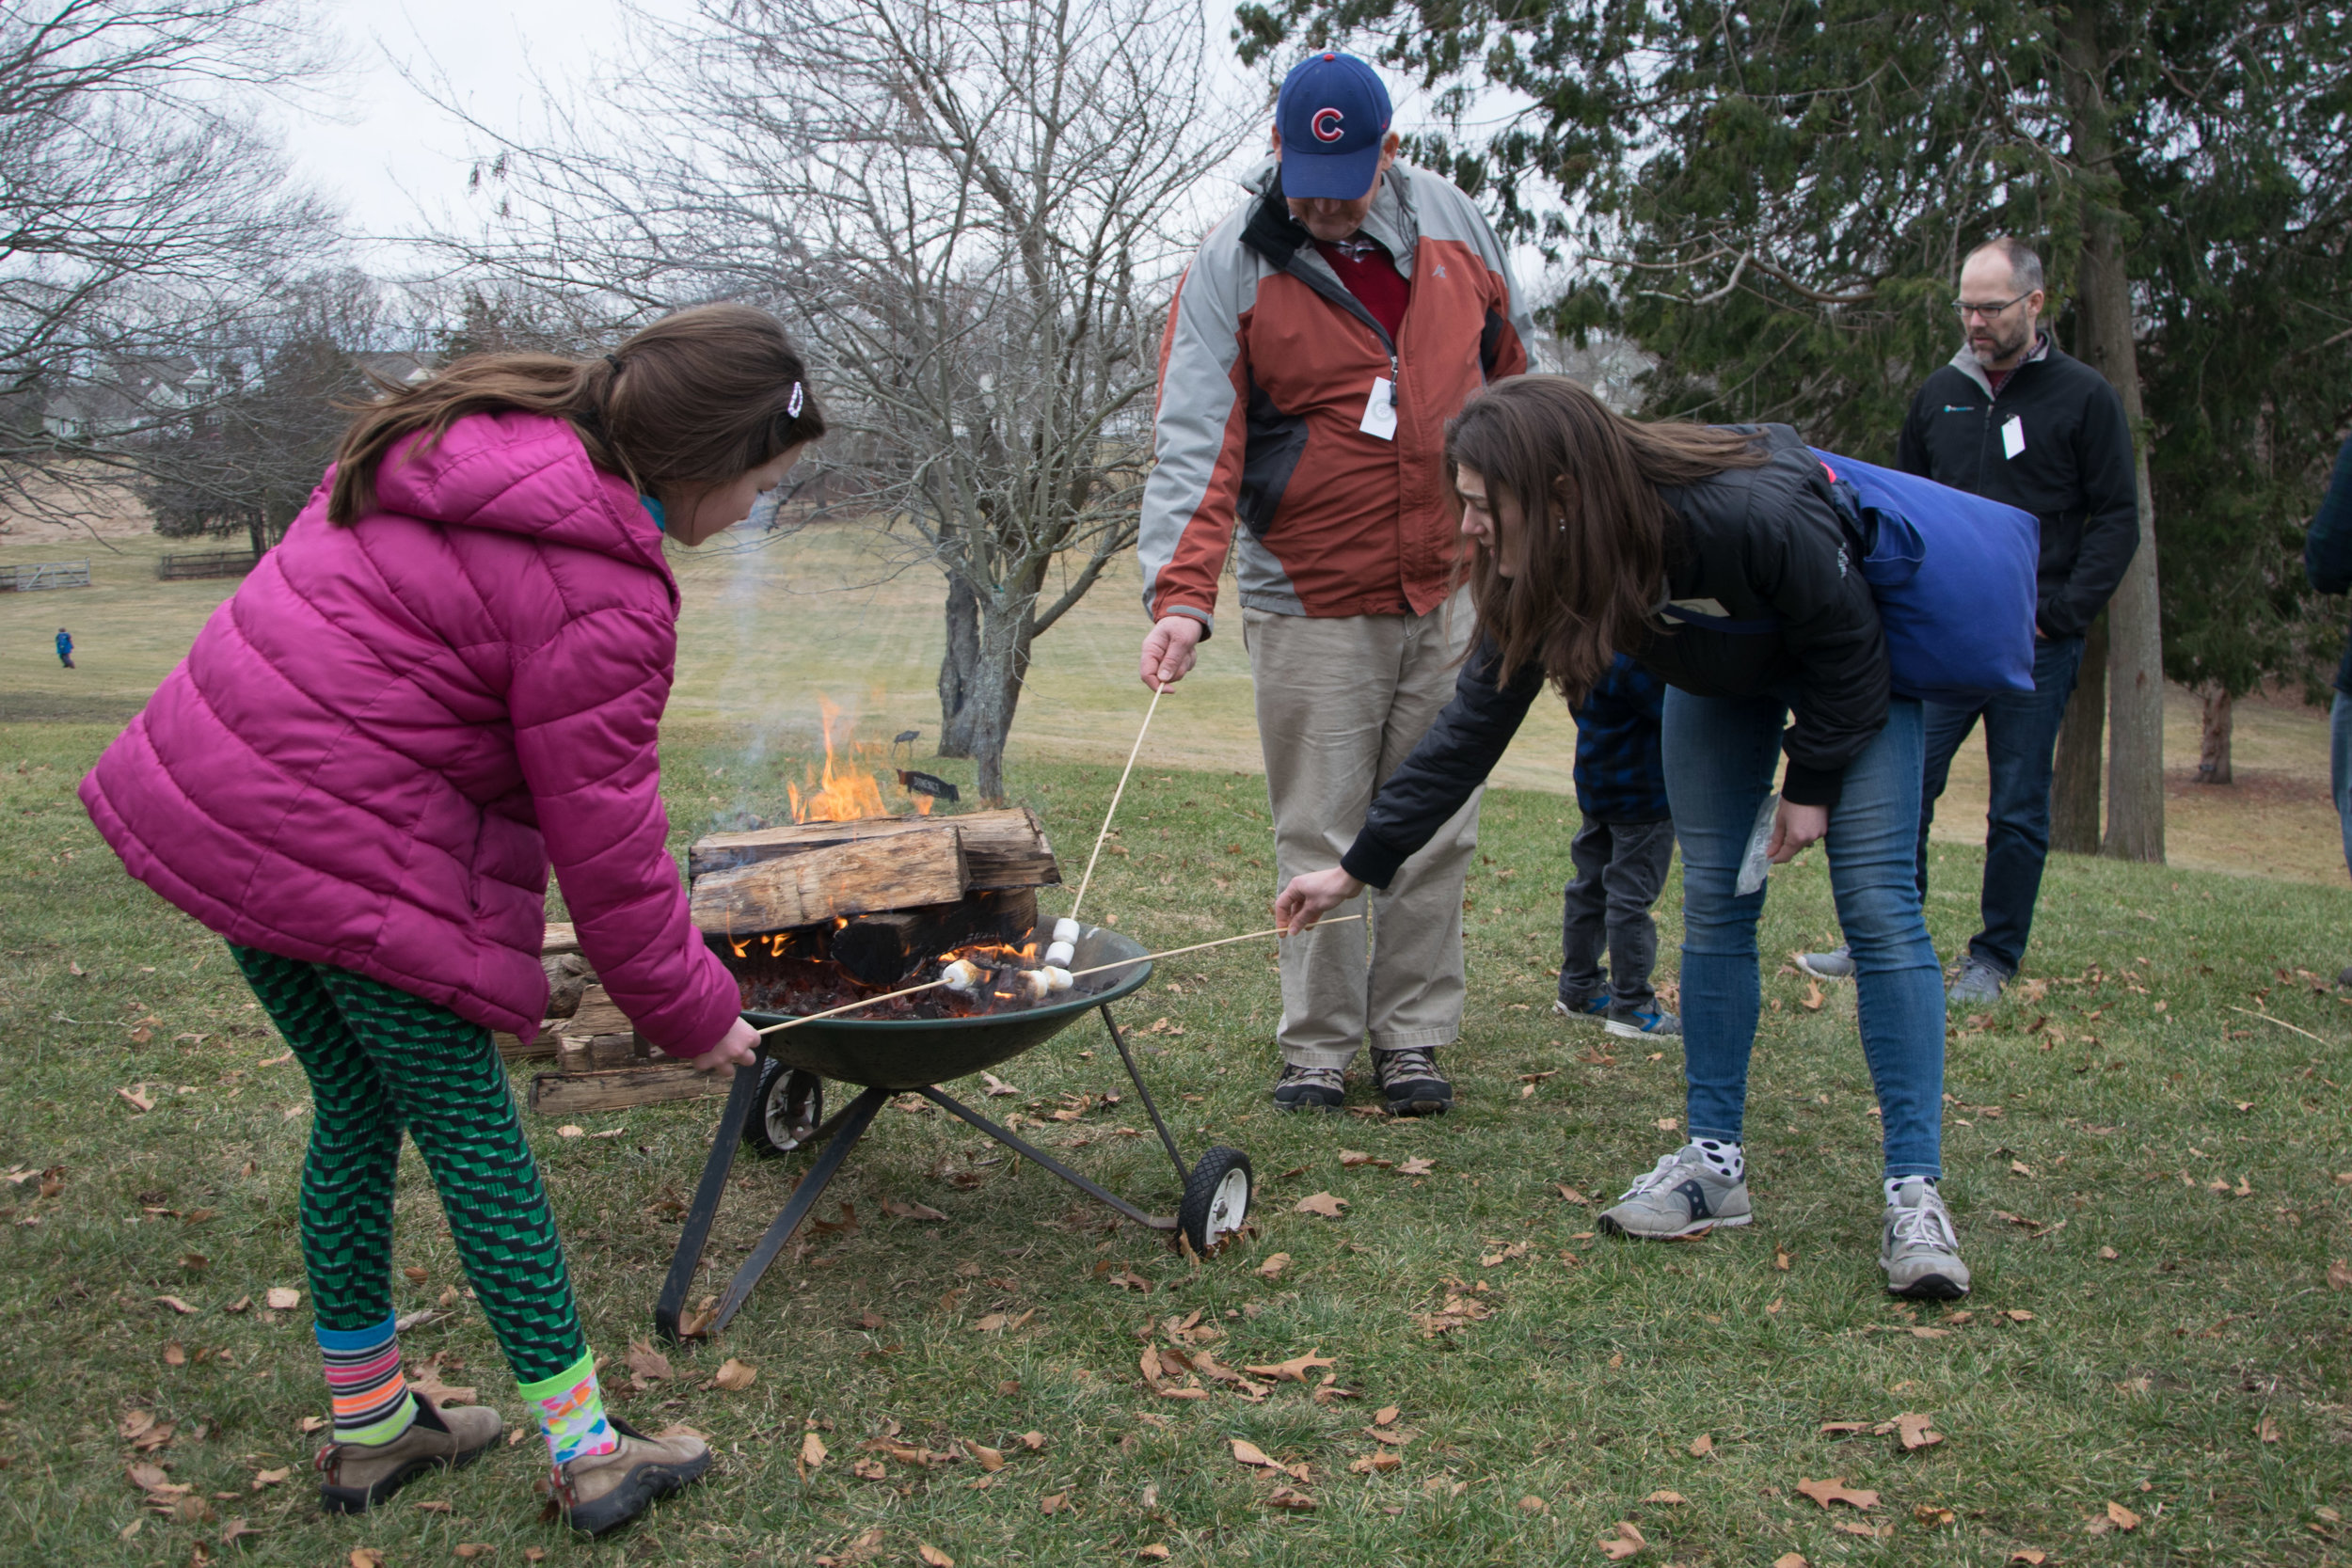 Although snow was sparse, the year's first annual  Snow Day  at the Homestead featured marshmallow-roasting, whoopie pies, and hiking along the property's various trails along the river. More than 100 people availed themselves of the opportunity to explore grounds' winter habitats.